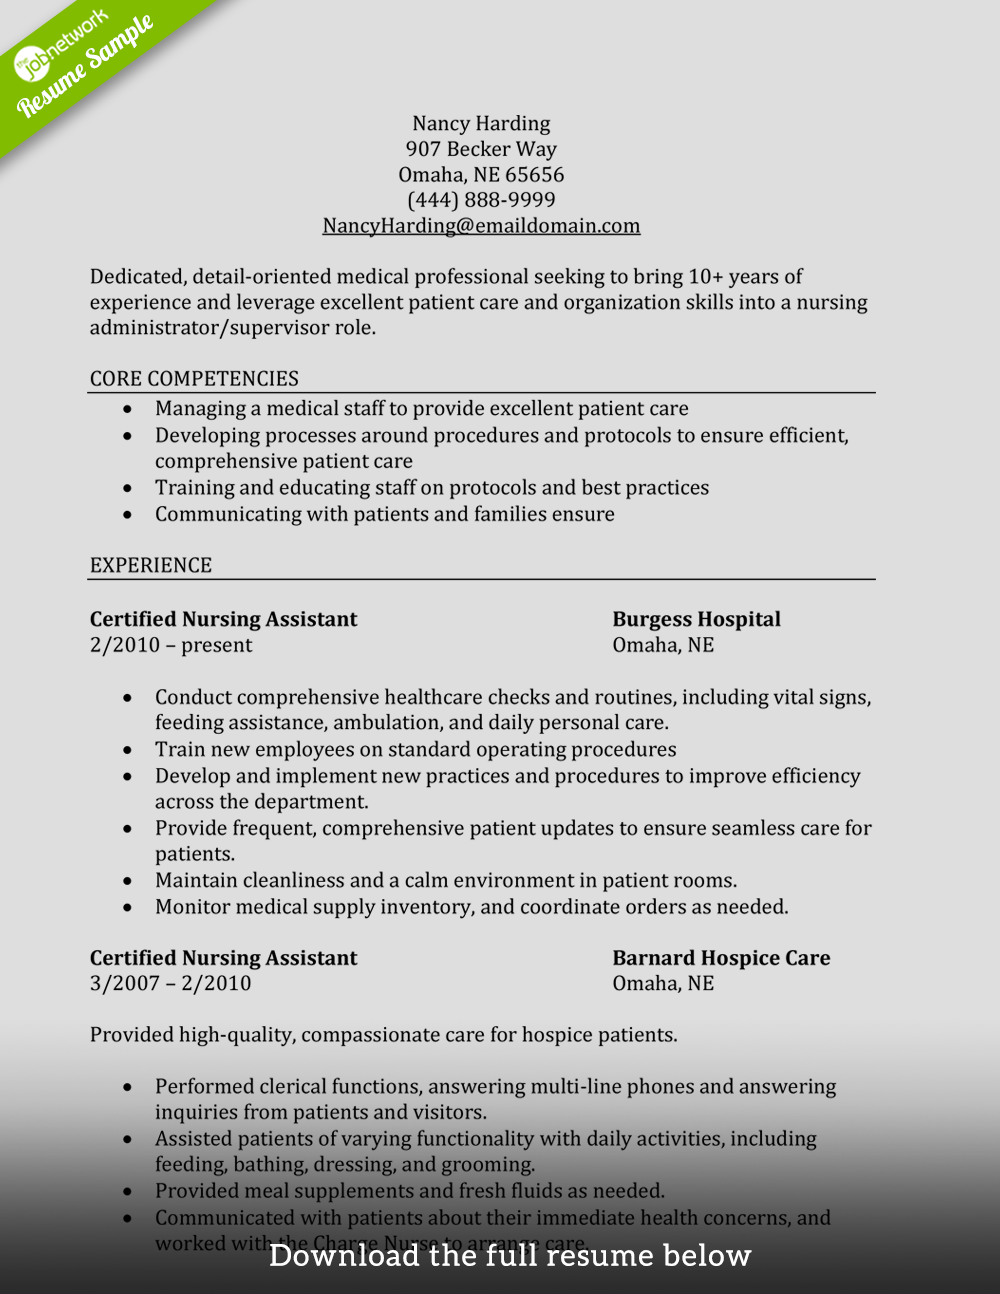 How To Write A Perfect Cna Resume (examples Included. Photo In Resume Or Not. Sap Abap Workflow Resume. Resume Download Template Free. Summary Profile For Resume. Field Service Engineer Resume. Musical Theatre Resume Template. Skills Resume For It Professional. Stay At Home Mom Resume Template